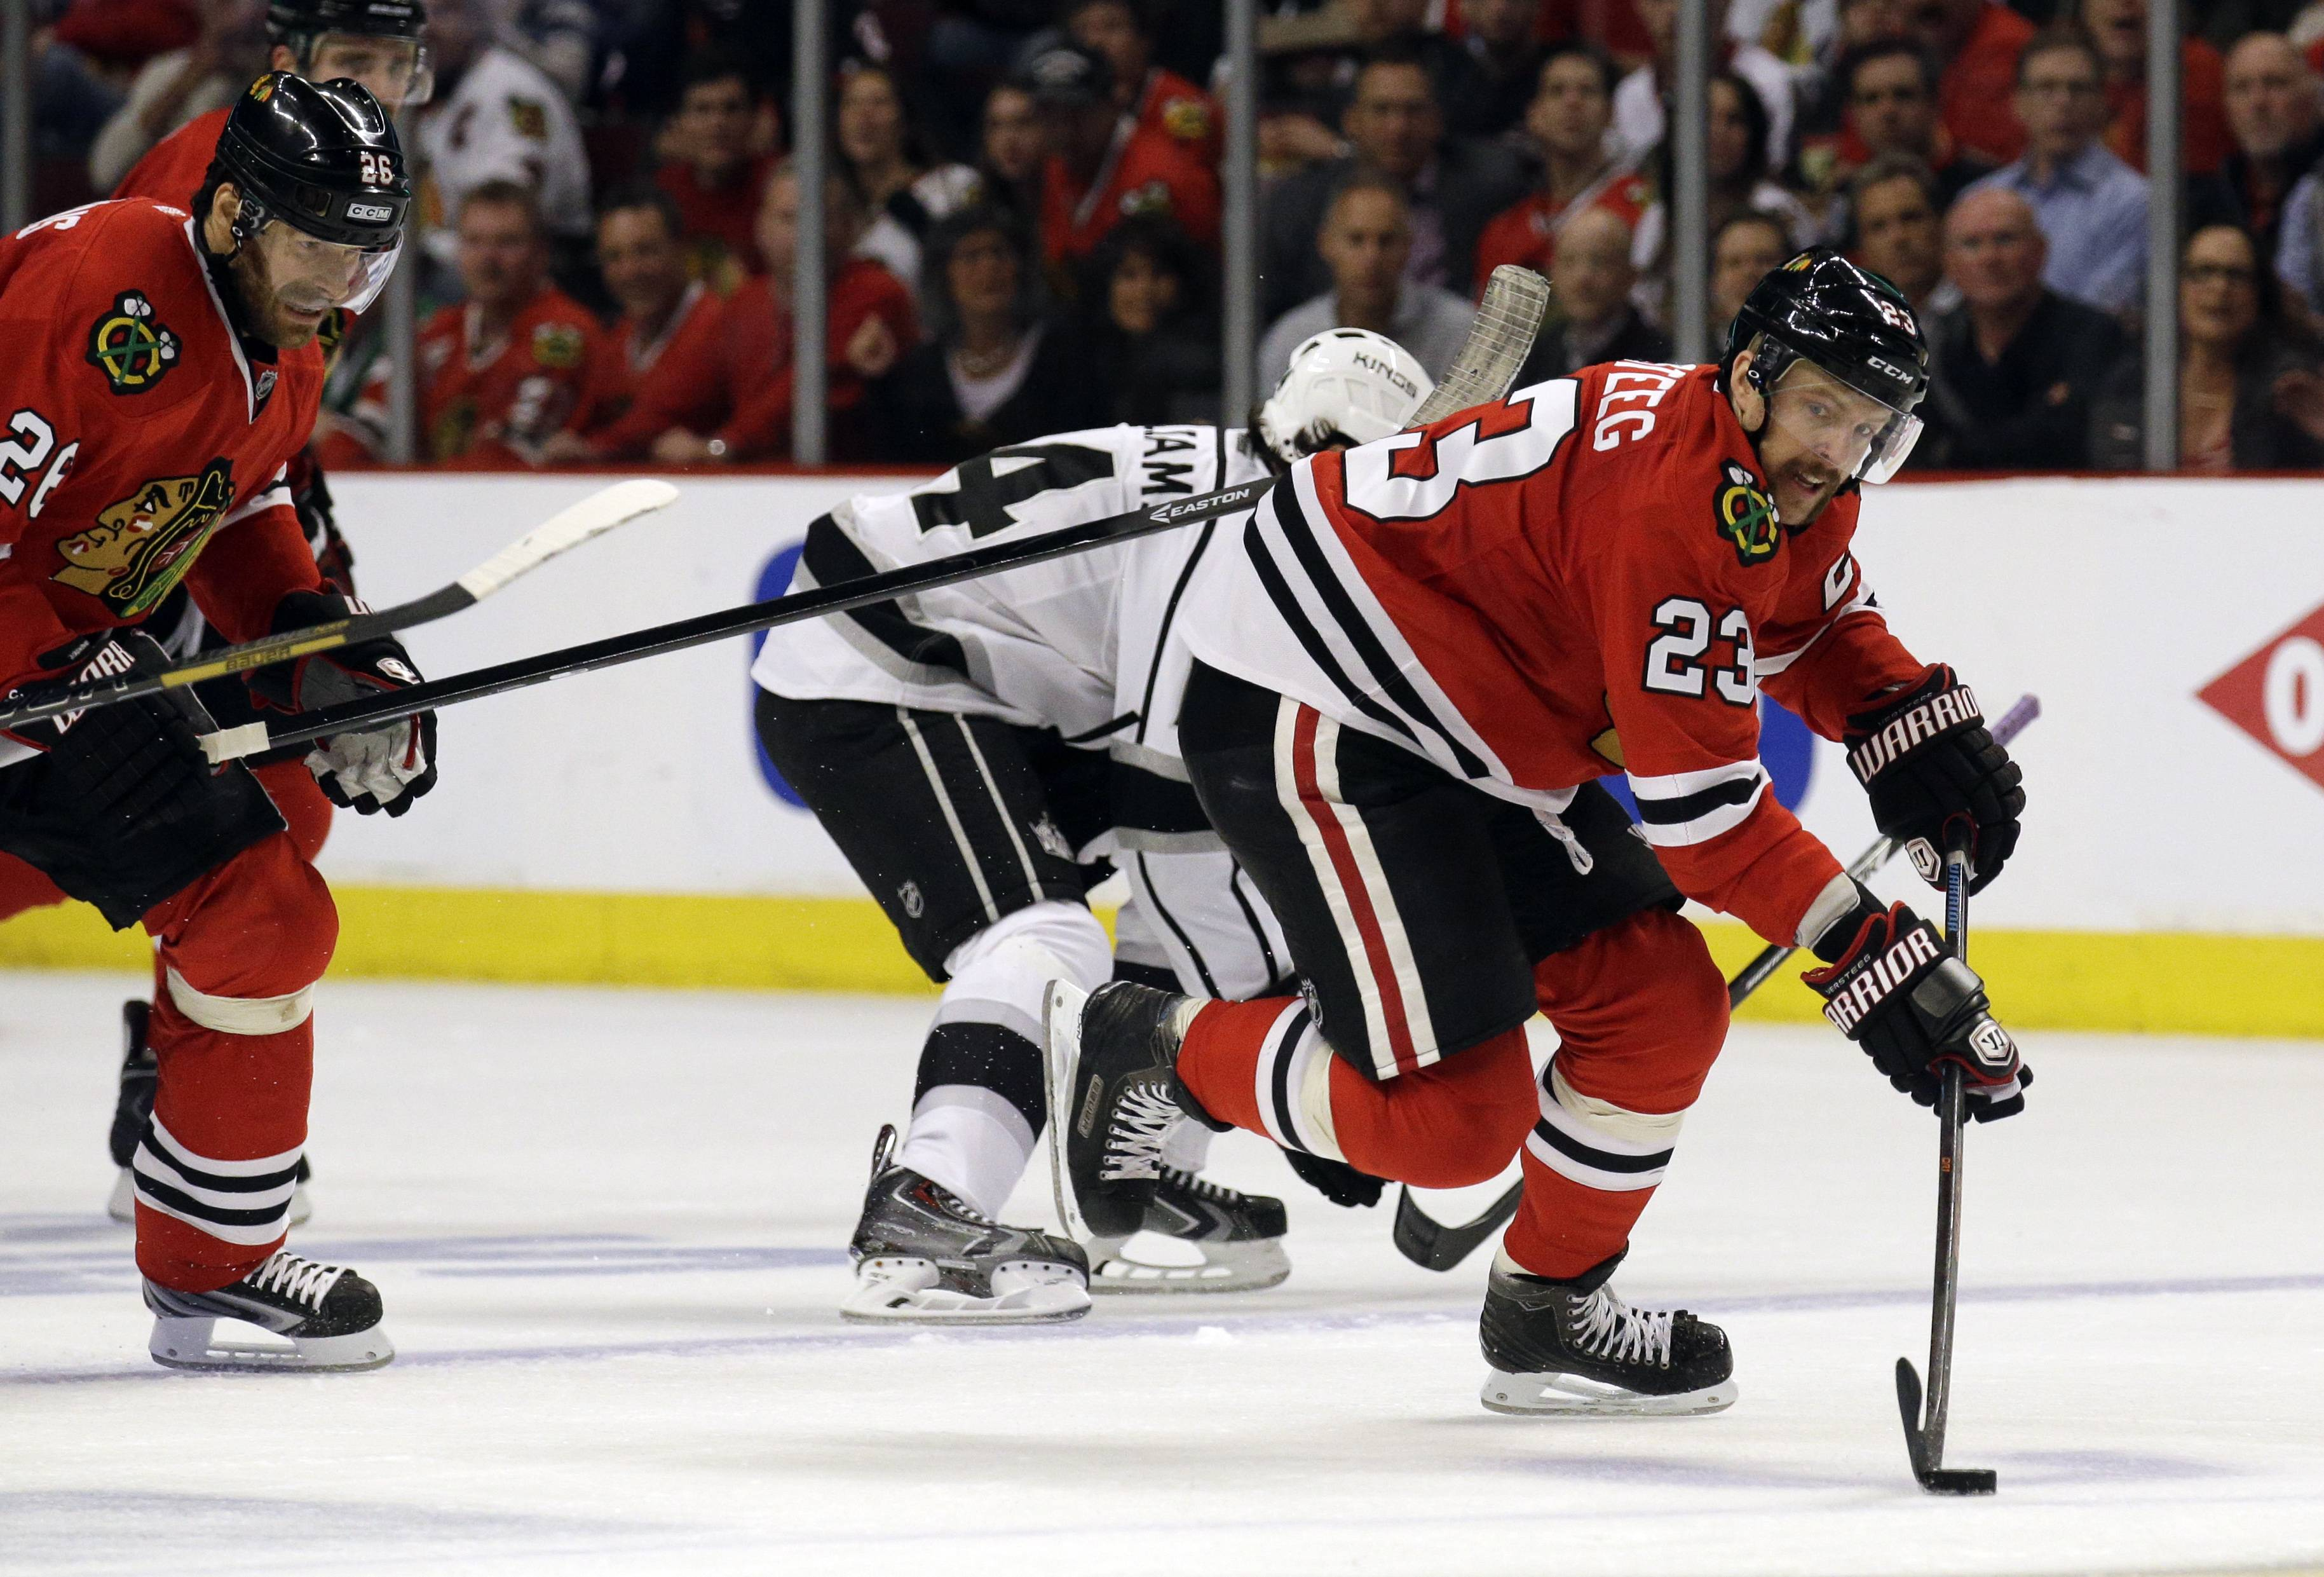 The Blackhawks' Kris Versteeg has struggled this postseason, leaving many to wonder if there is any benefit to having him in the lineup right now.